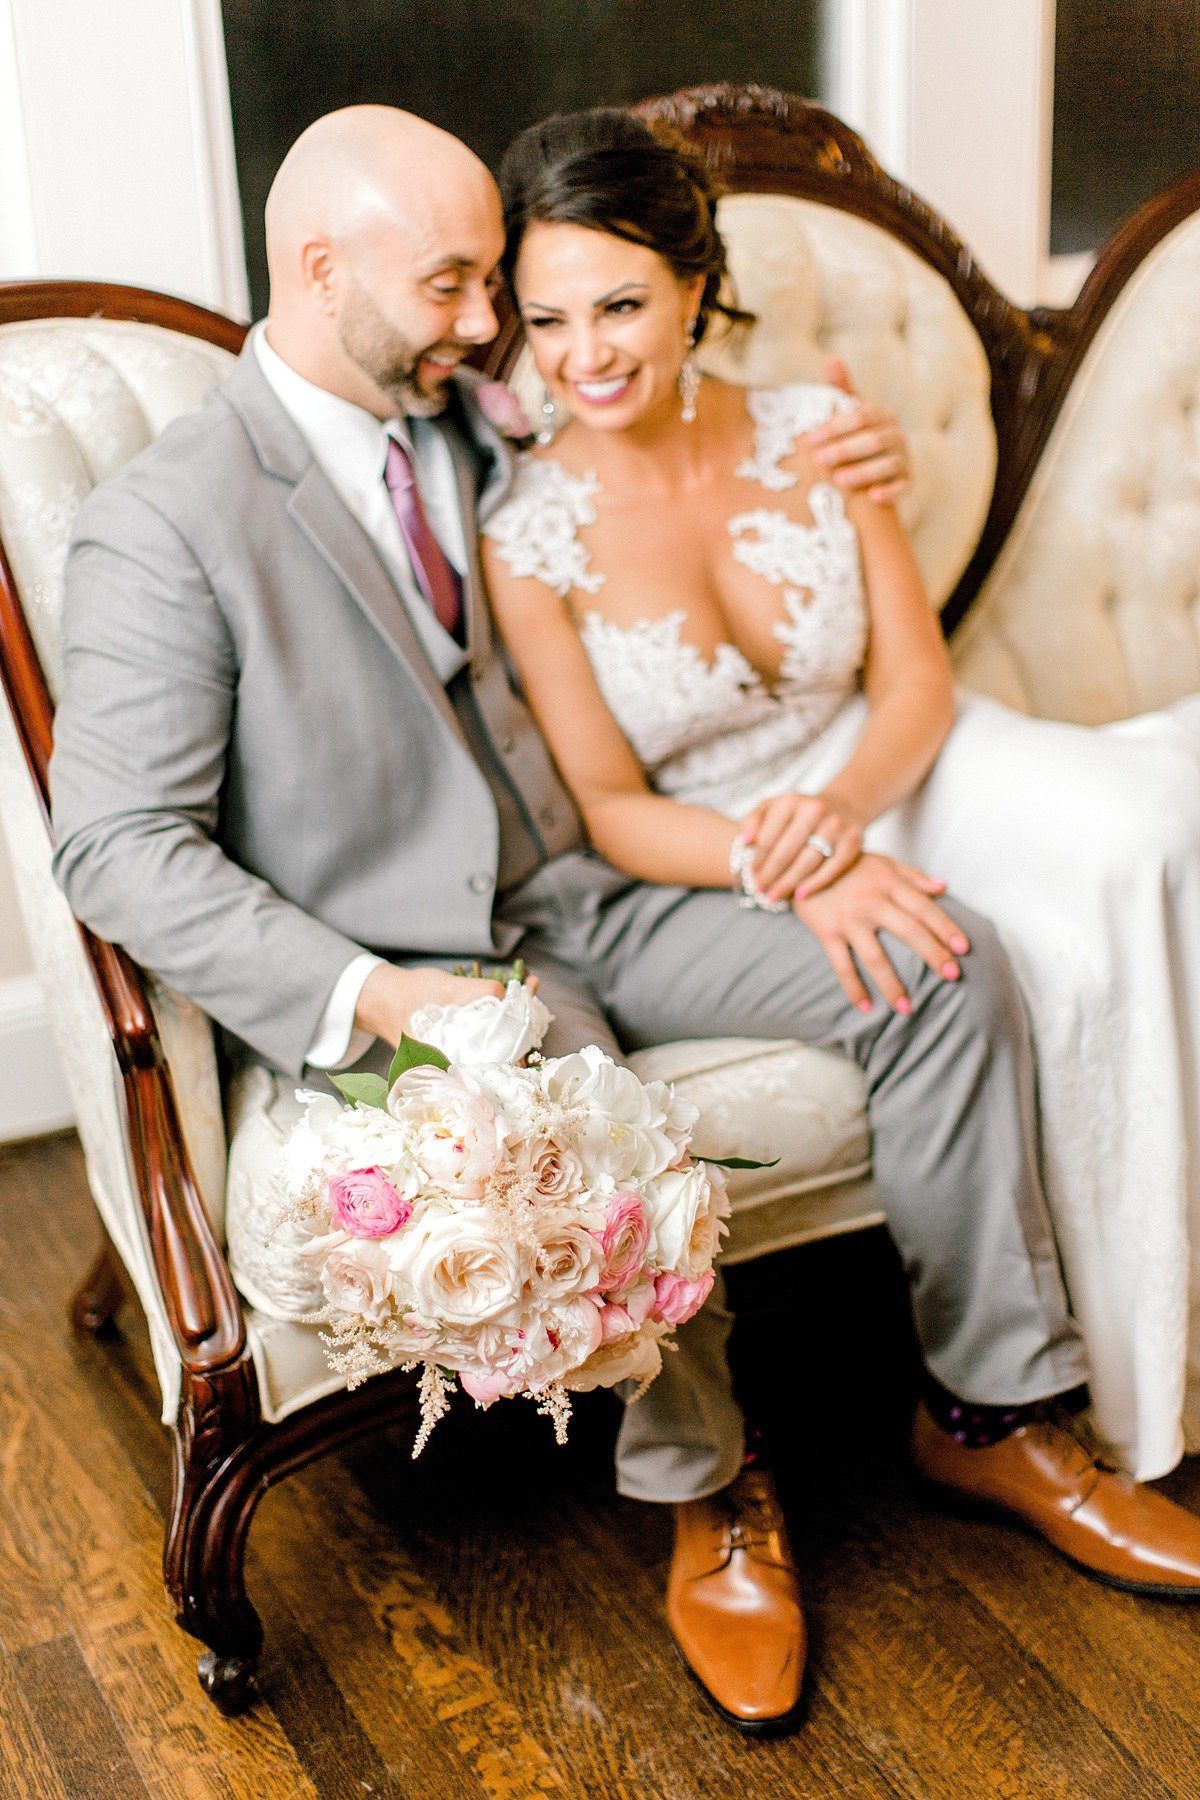 Elegant Spring Pink Abilena Plantation Indoor Rainy Wedding New Bern NC Andrew & Tianna Photography-128